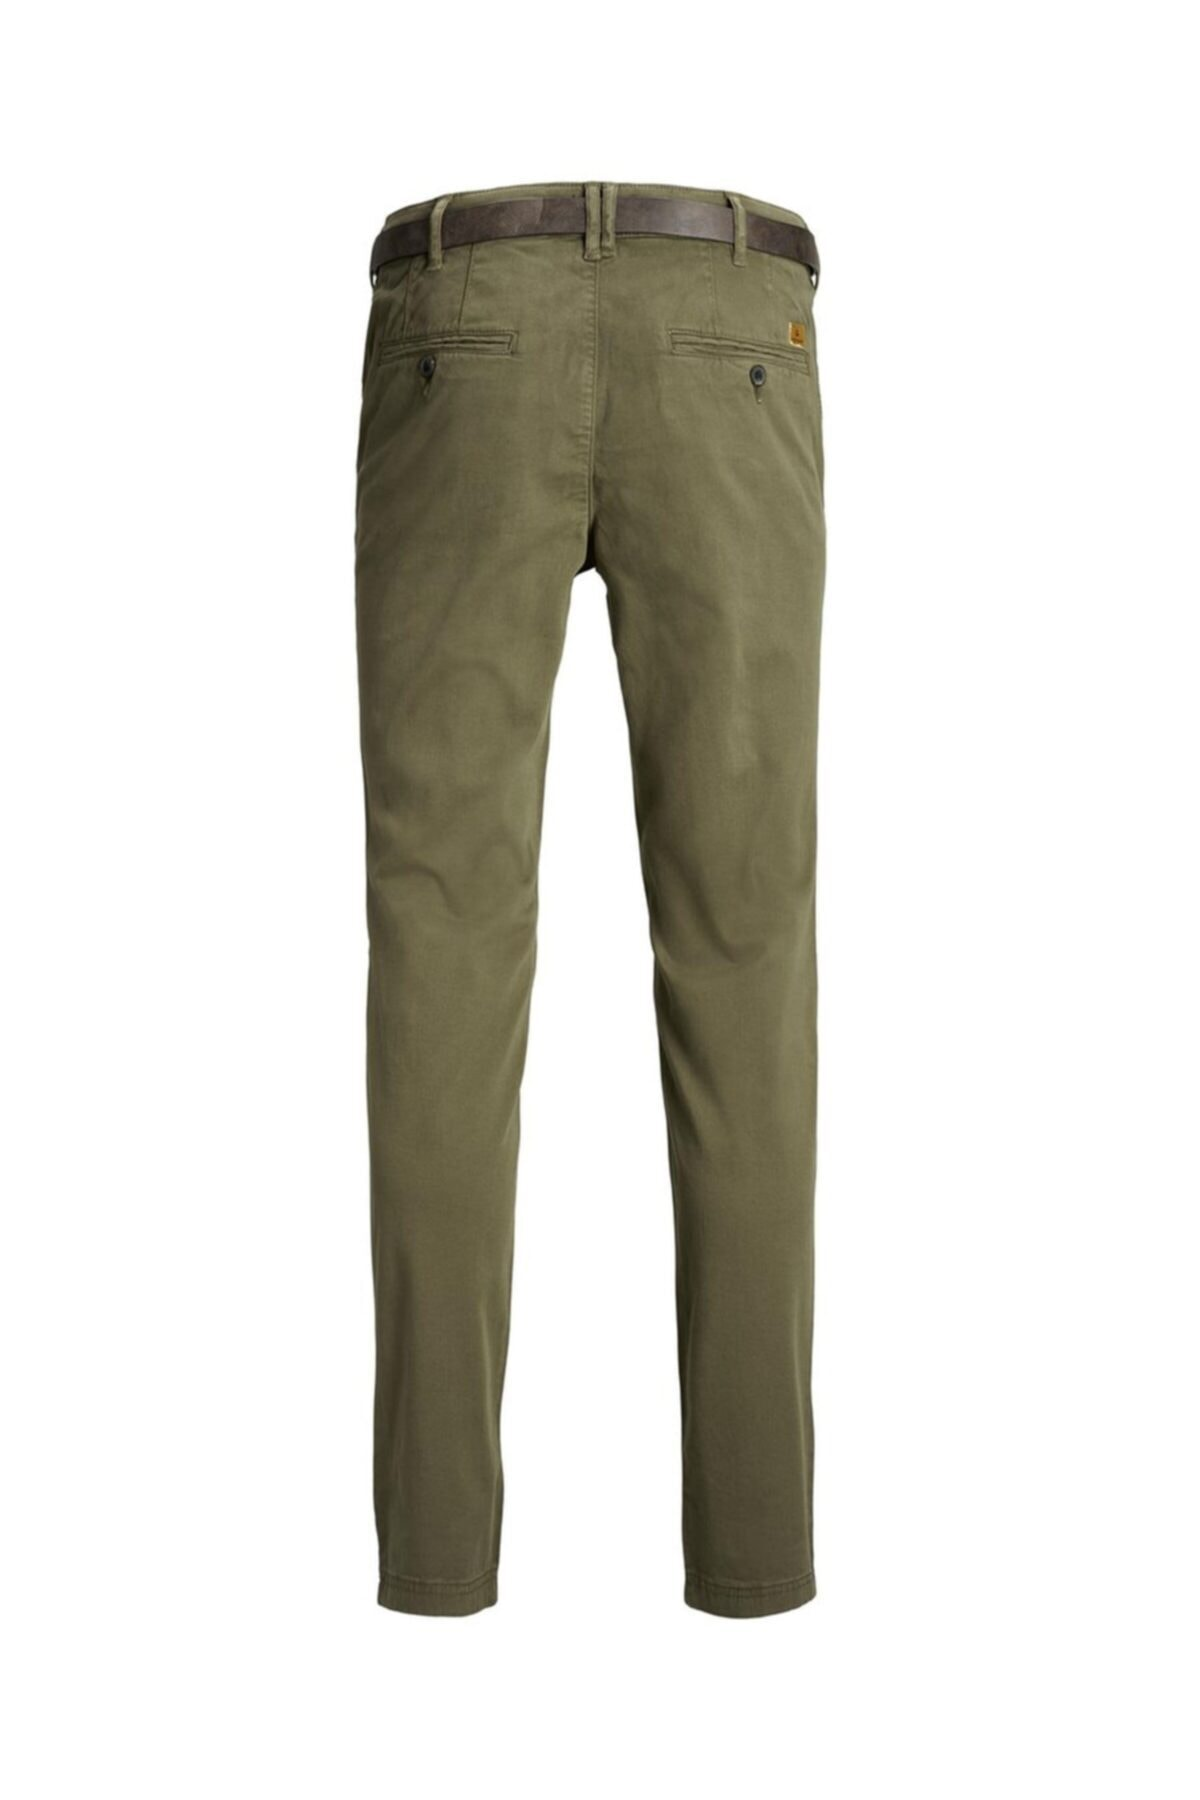 Jack & Jones Jack Jones James Olıve Erkek Pantolon 2